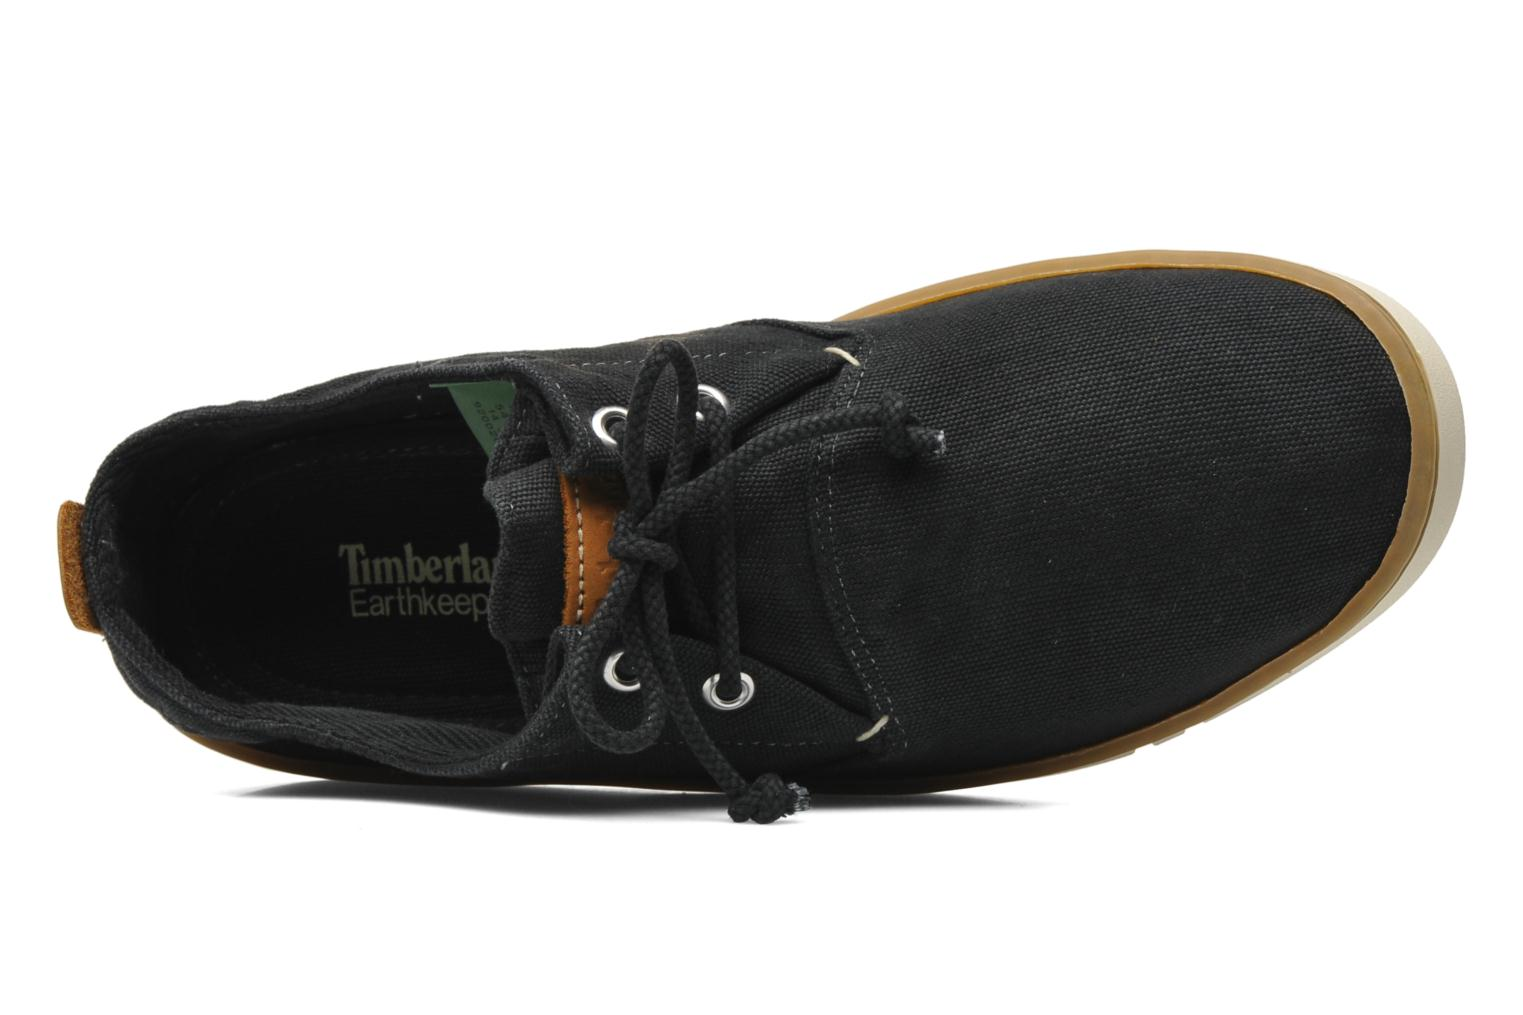 Les Earthkeepers Hommes Timberland Hookset Tissu Fabriqué À La Main Chaussures Oxford nfwIPY